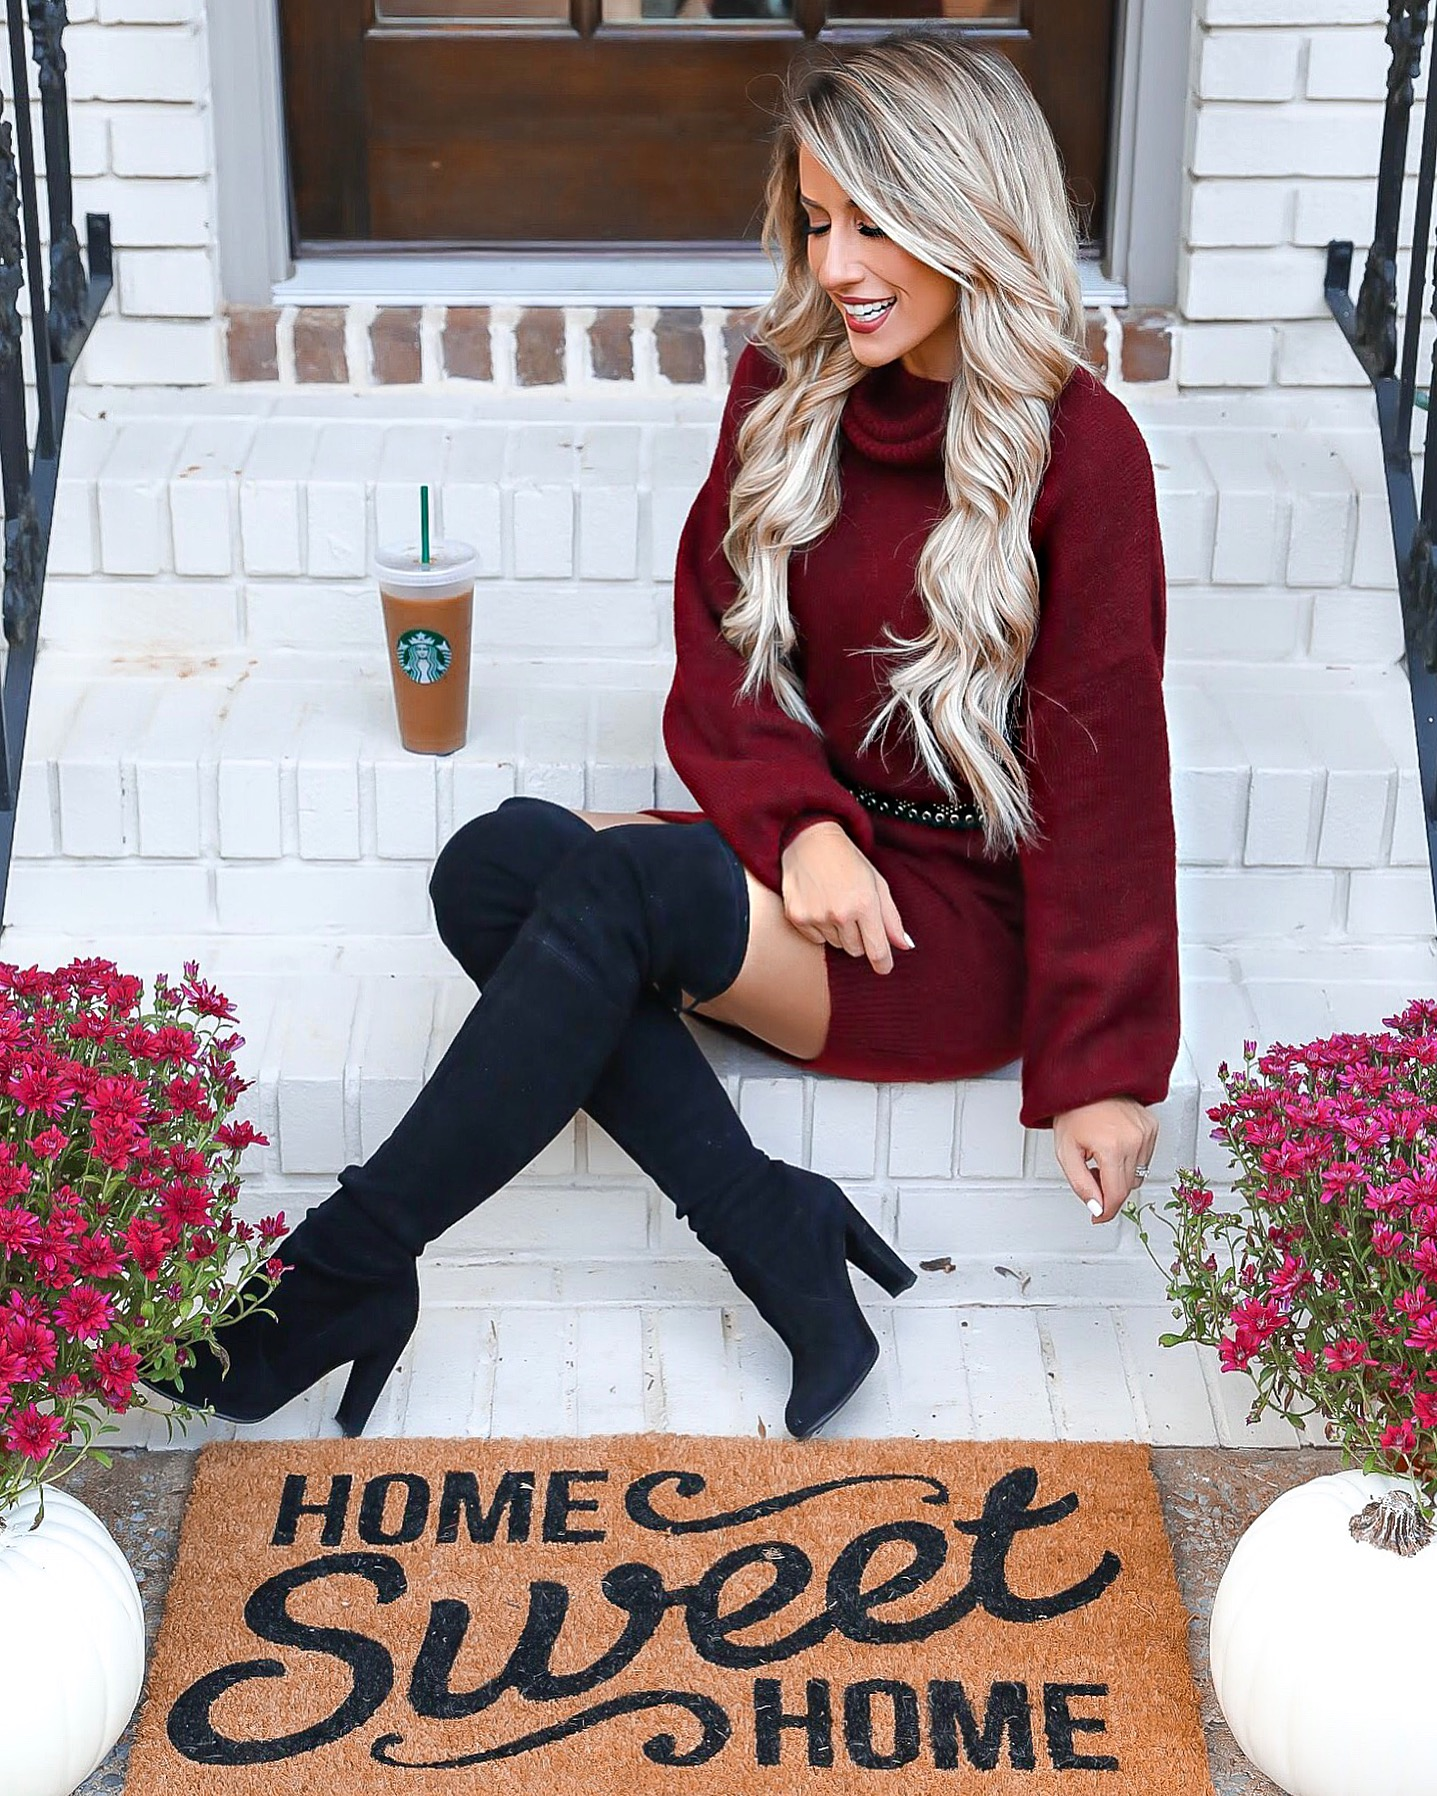 Express Fall Sweater Dress Outfit Burgundy Turtleneck Sweater Dress Home Sweet Home Door Mat Stewart Weitzman Hiline Over The Knee Boots Outfit Black